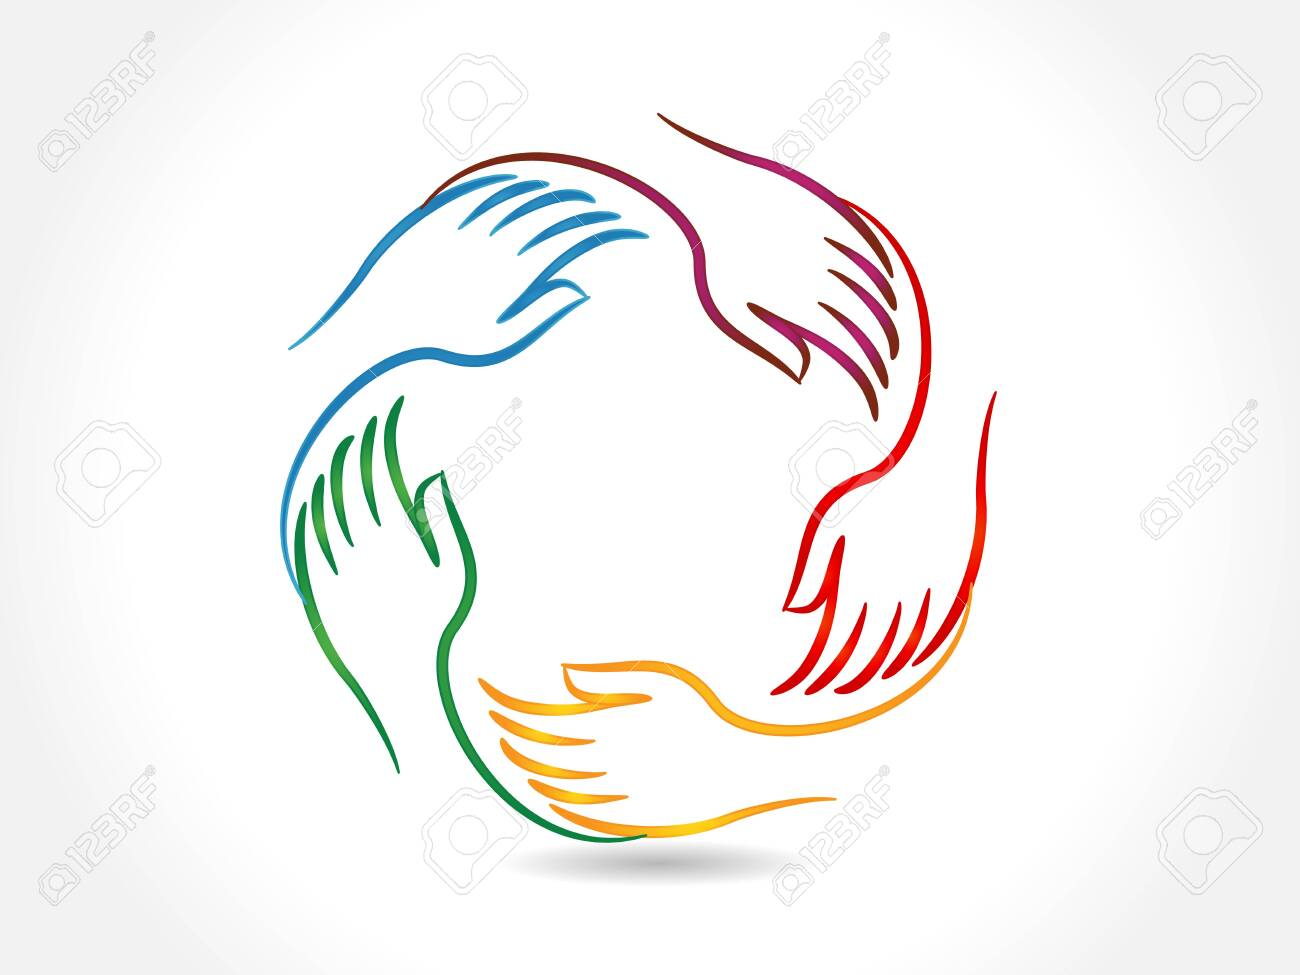 Logo handshake teamwork business five people voluntary collaboration charity concepts vector icon image design - 157577432